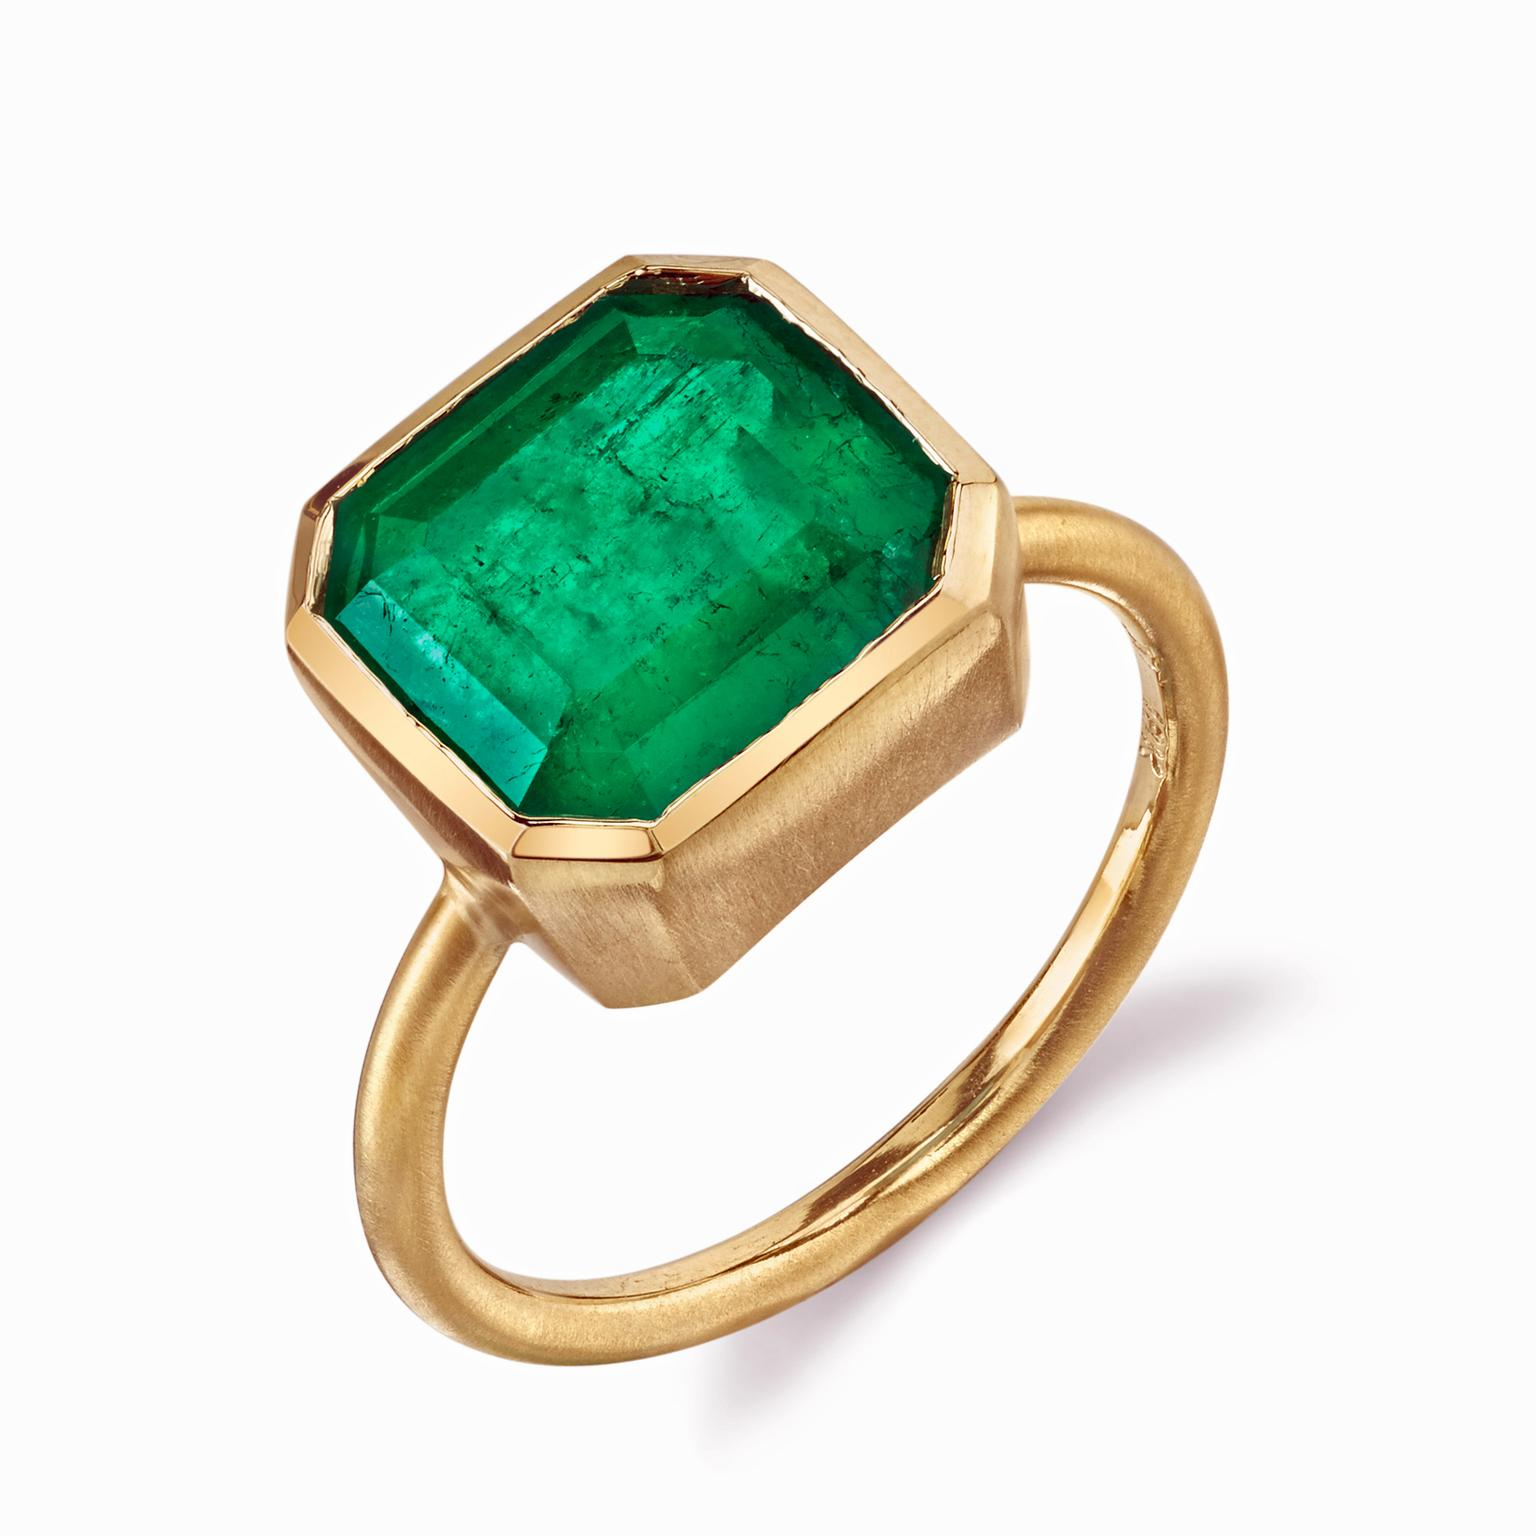 Irene Neuwirth emerald ring